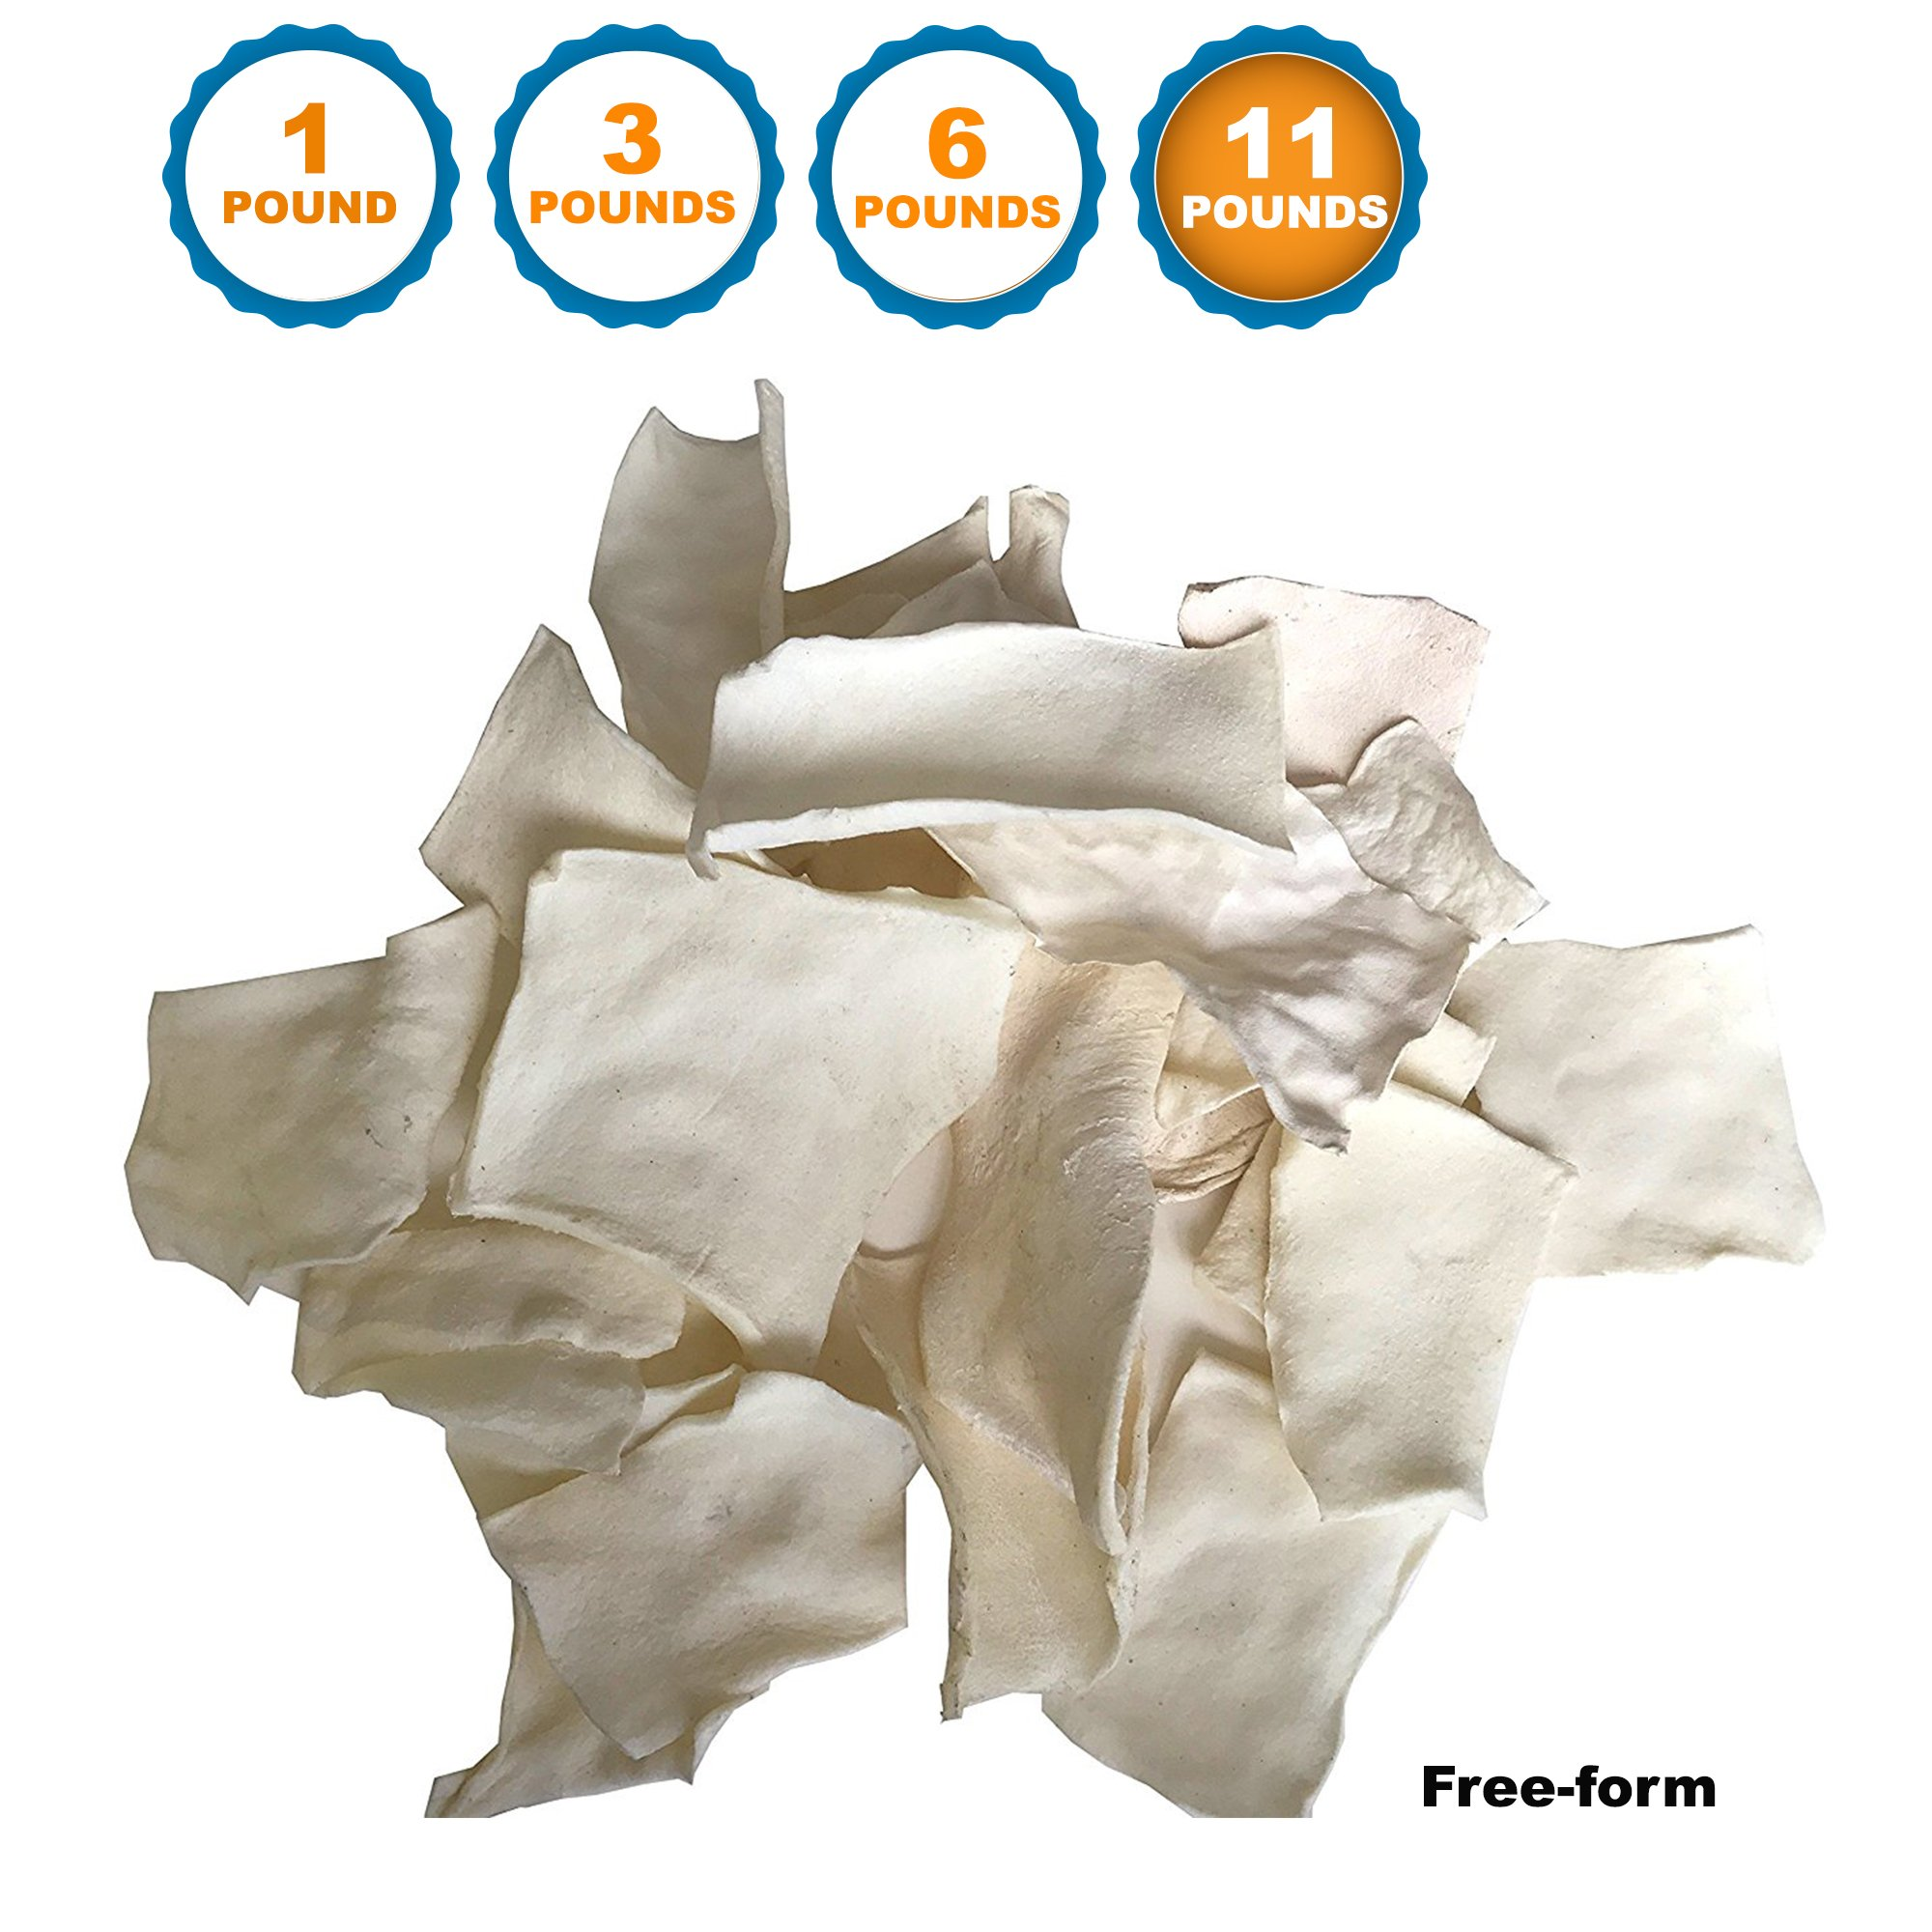 123 Treats - Rawhide Chips Dog Treats Free-Form for Dogs | Quality Bulk Beef Hide Dog Chews - No Additives, Chemicals or Hormones from Natural Grass Fed Livestock (11 LBS - Free-Form) by 123 Treats